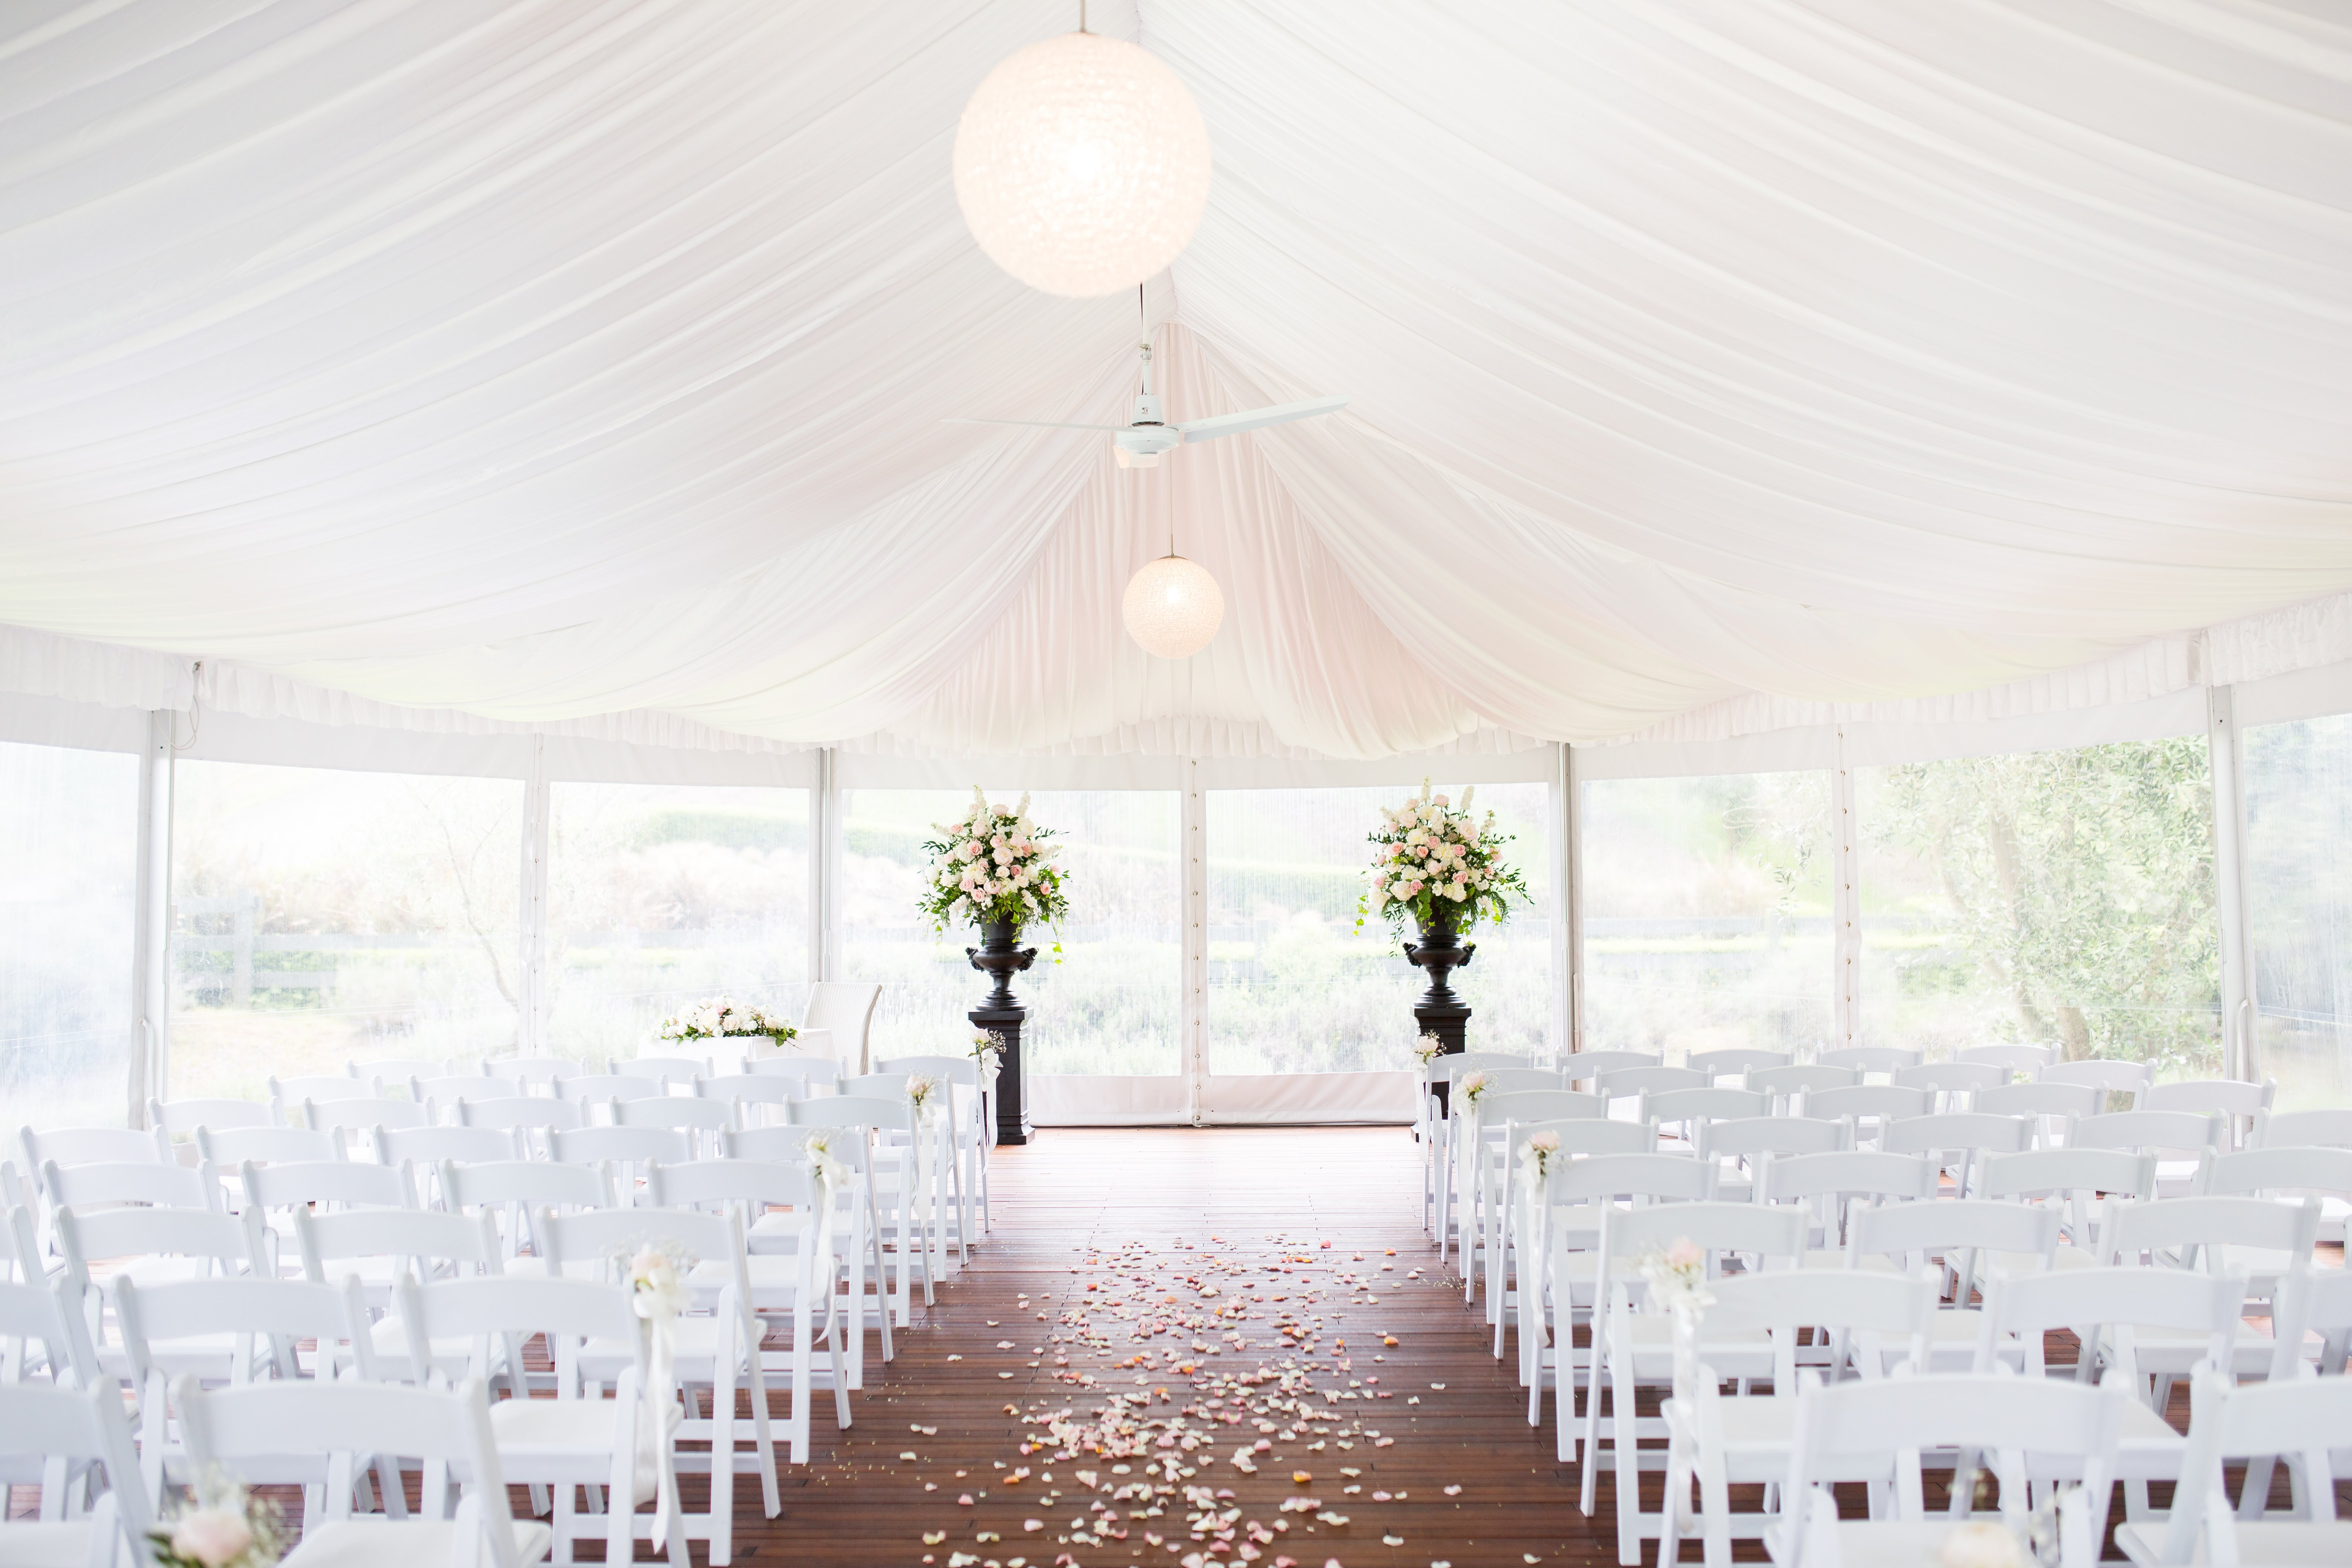 Wedding event venue decorations